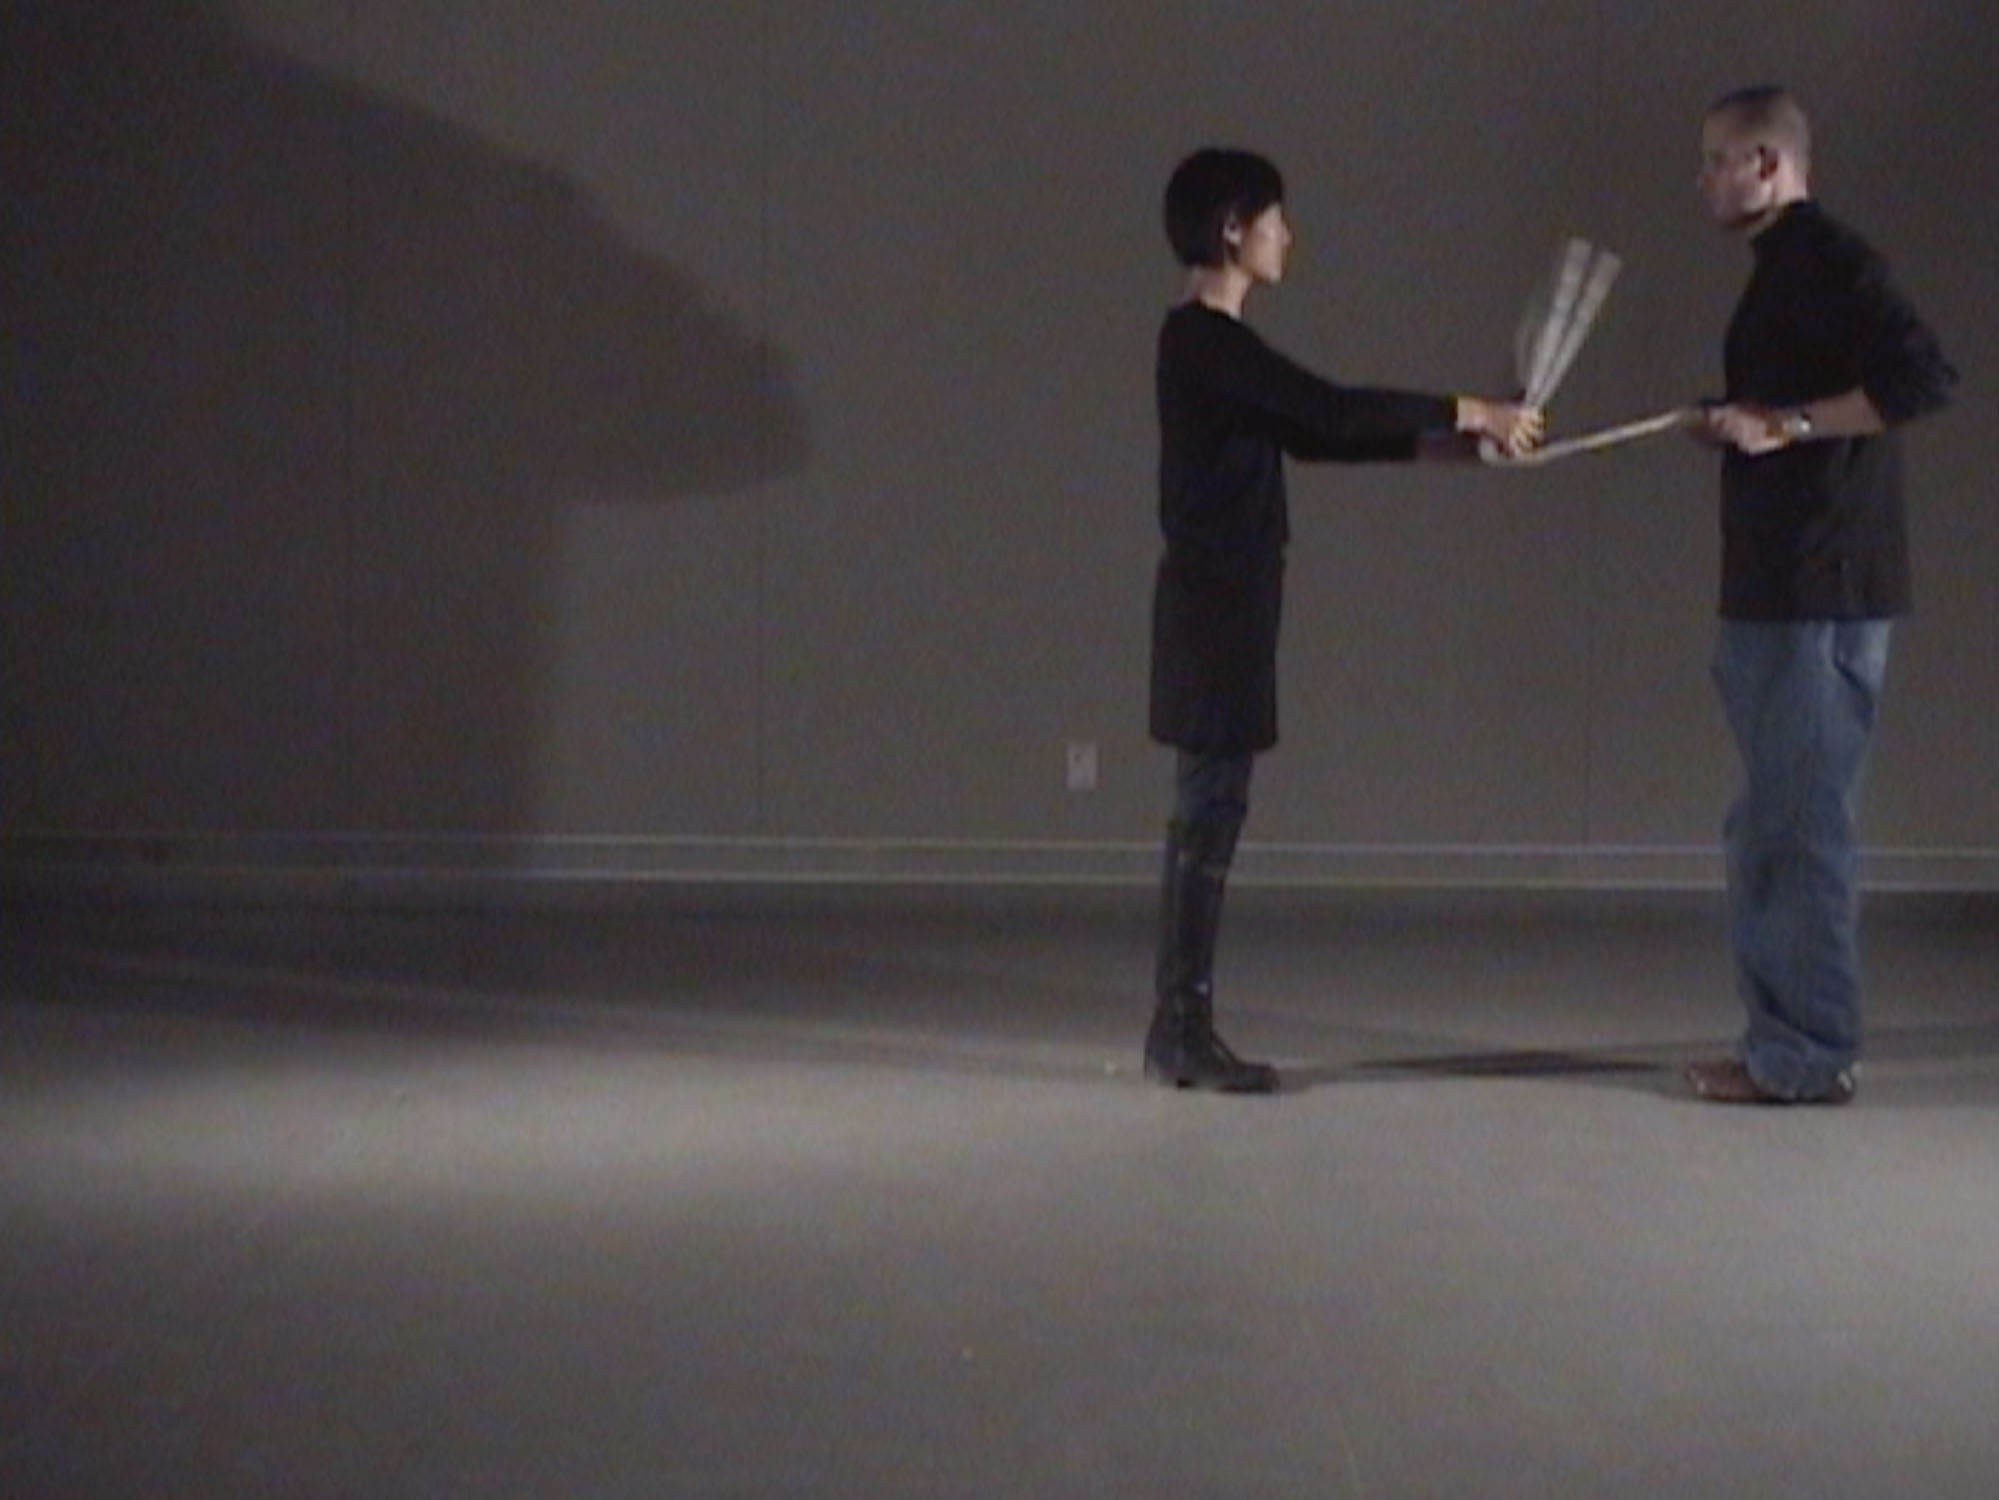 Finational [Canadian Flag] (2008) (performance still) by Annie Onyi Cheung